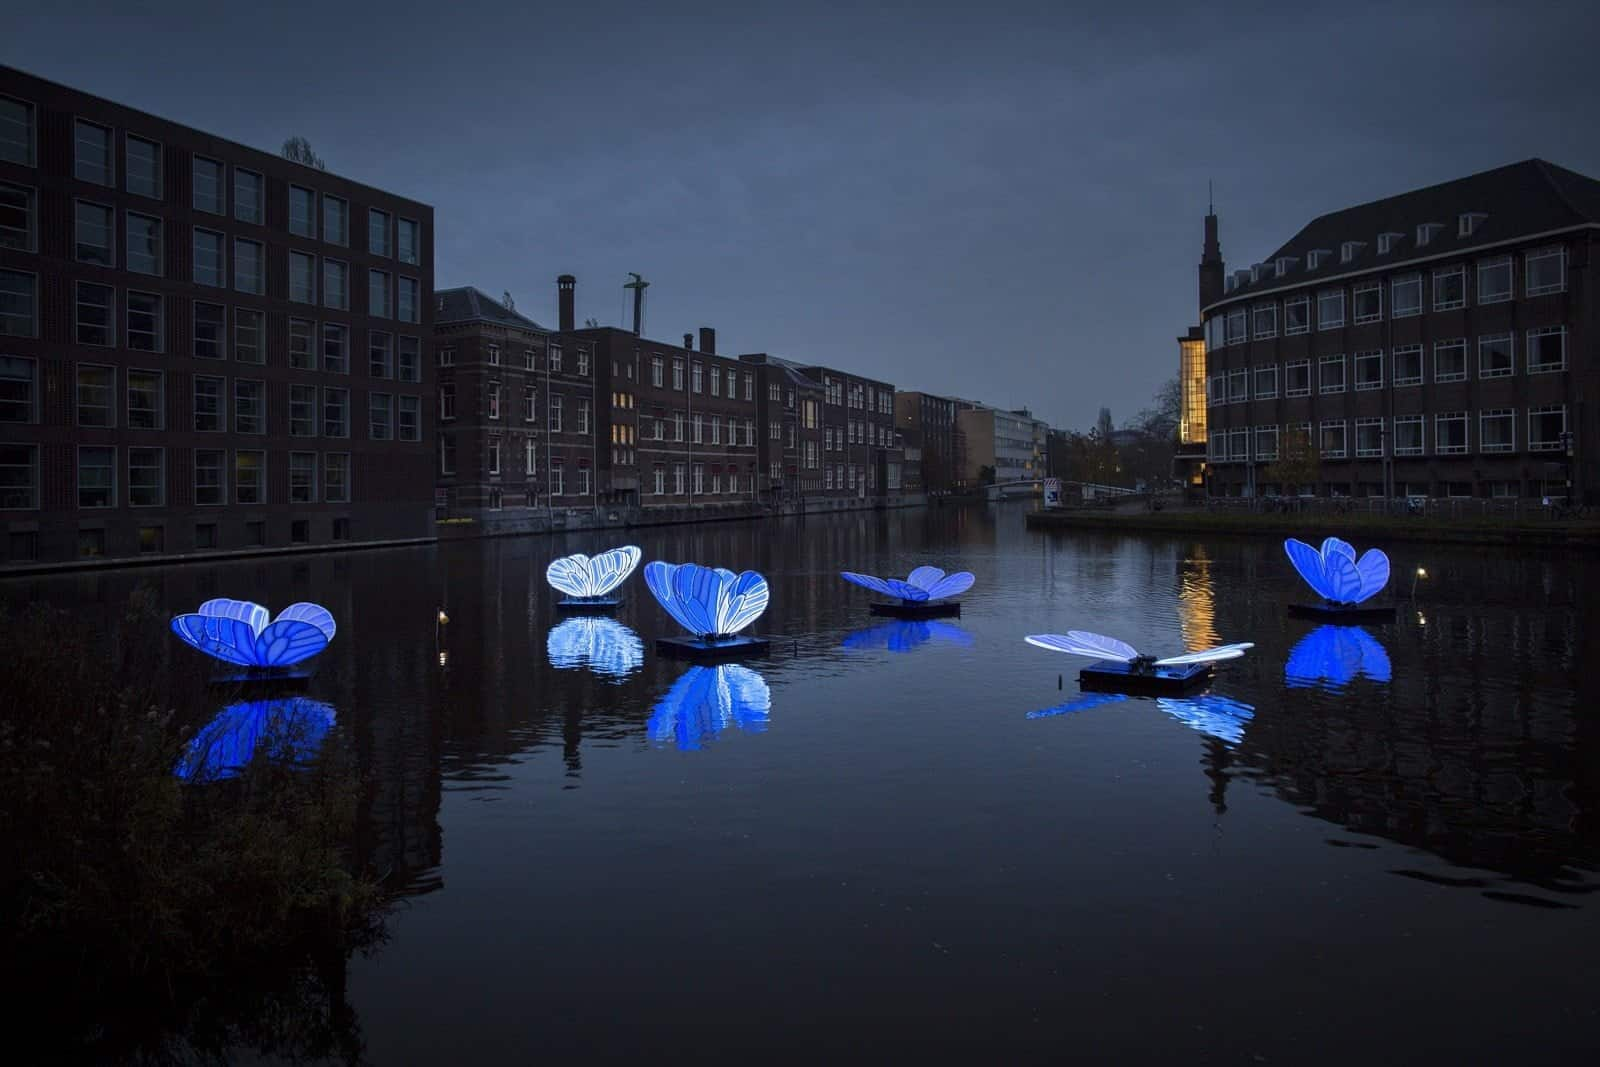 Butterfly Effect - By Masamichi Shimada - Amsterdam Light Festival 2019 - Photo Copyright Janus van den Eijnden (1)